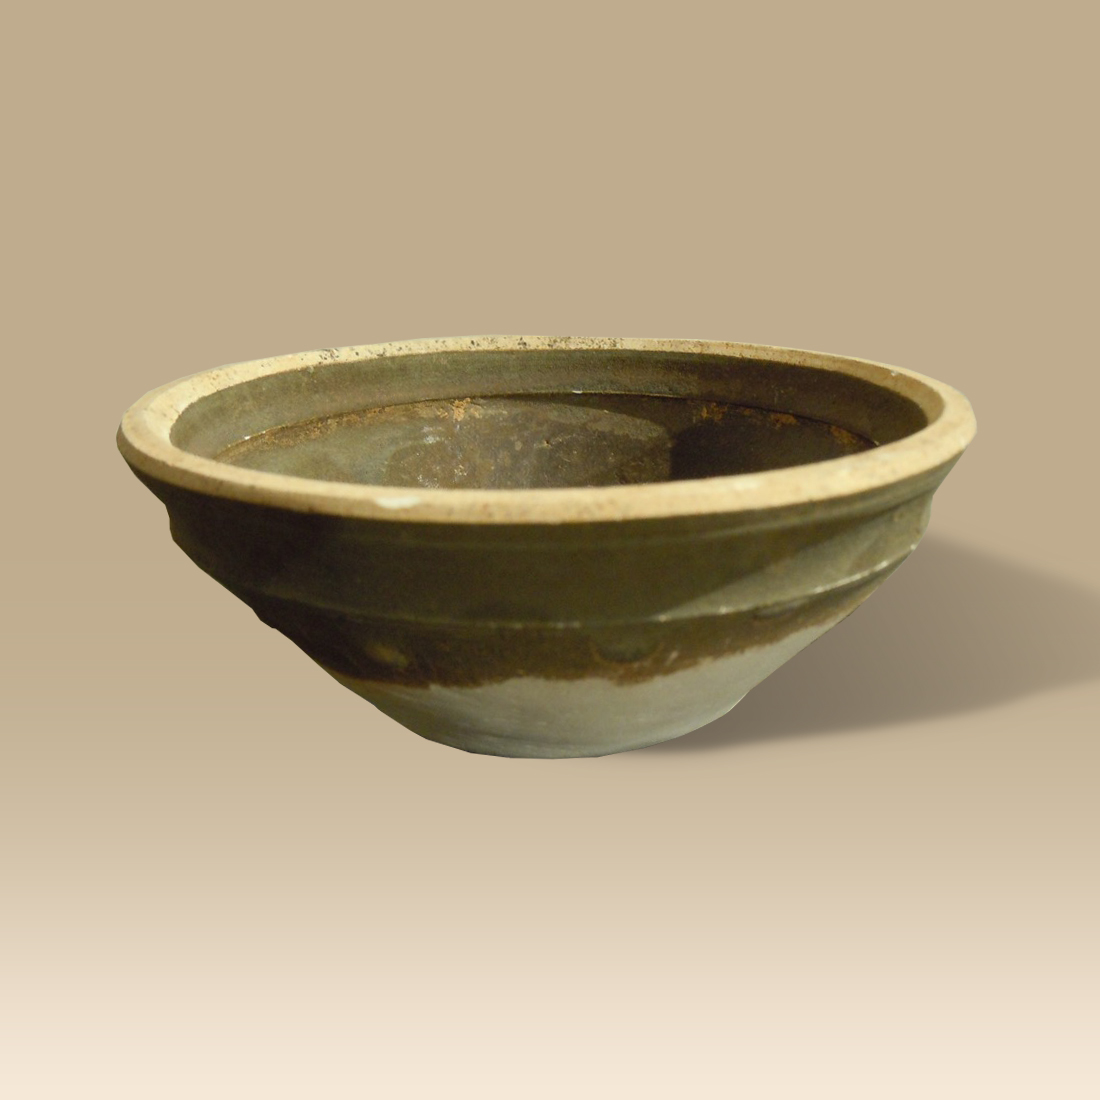 A Chinese Northern Sung Dynasty Cha Bowl 960 – 127 AD